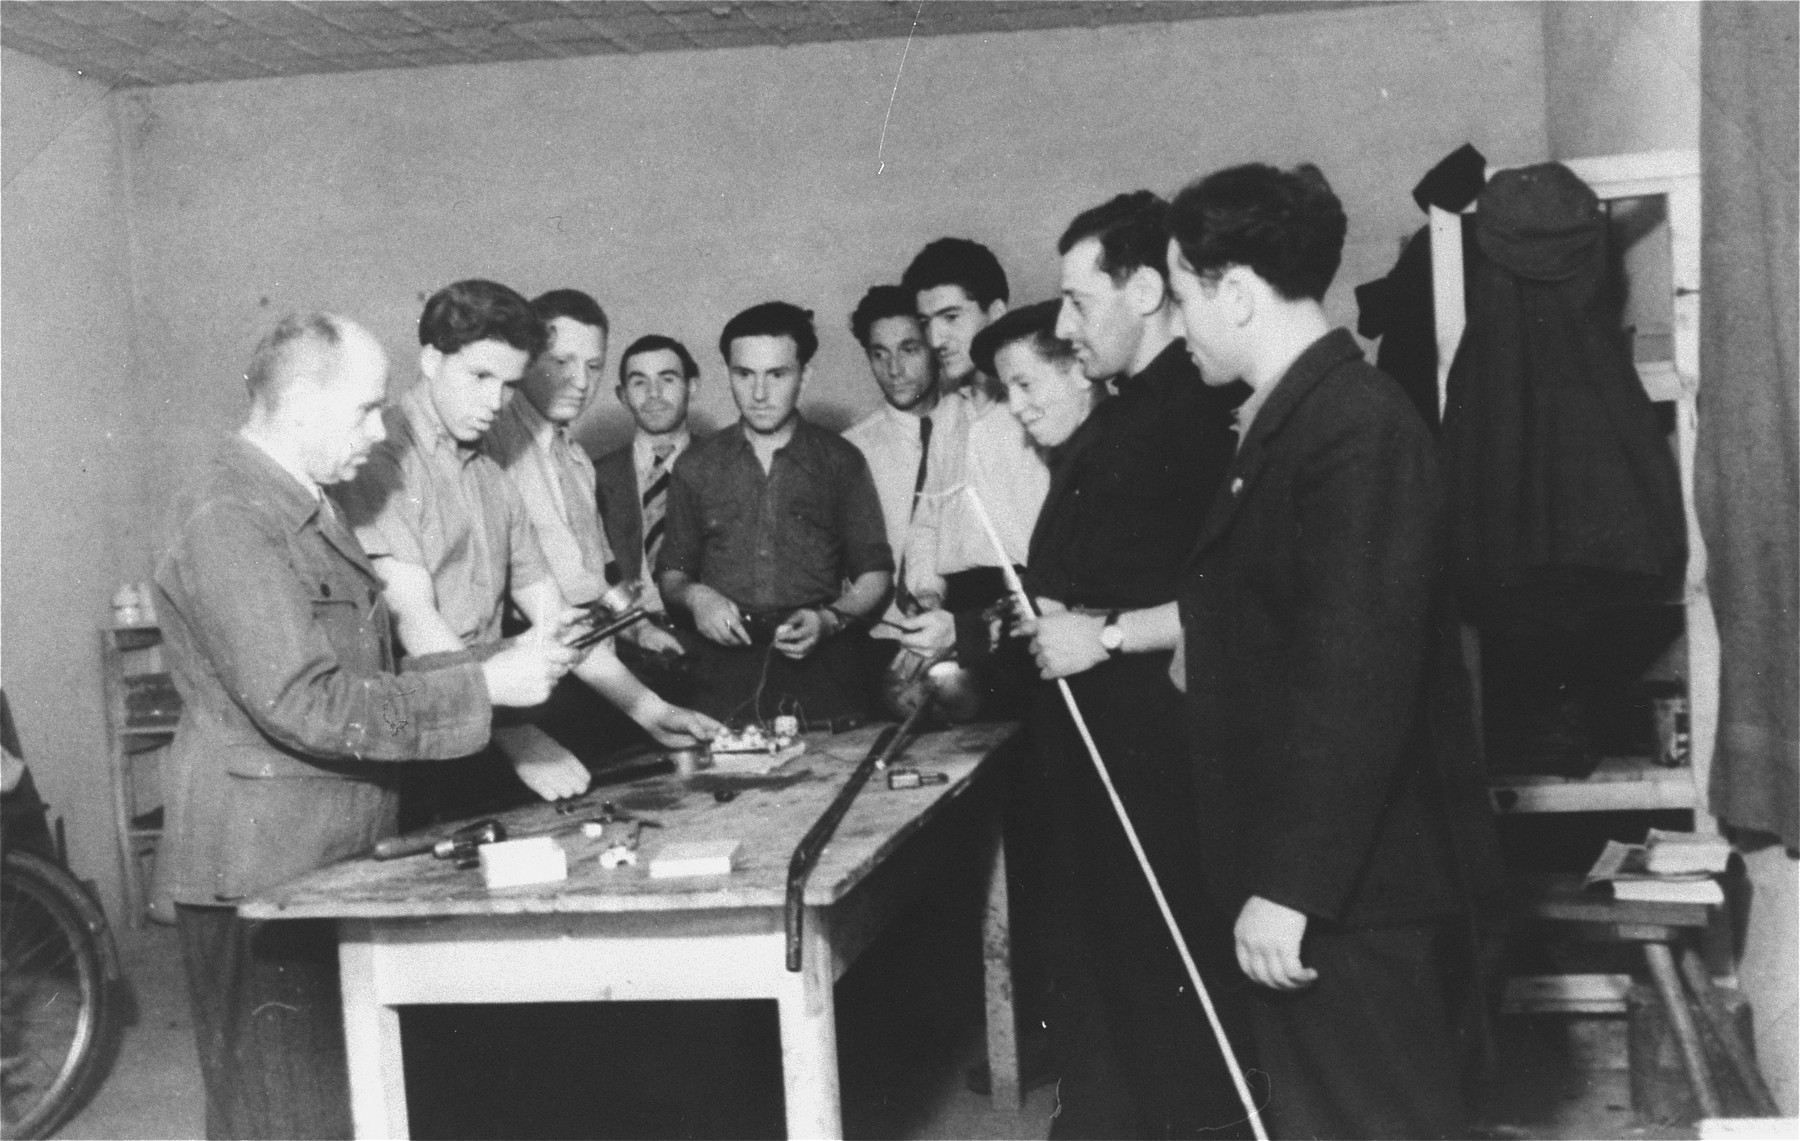 Men gather around a table for a tools demonstration in an ORT sponsored vocational school in the Zeilsheim displaced persons' camp.  Pictured among the men in the background is Jana Wisgardisky.